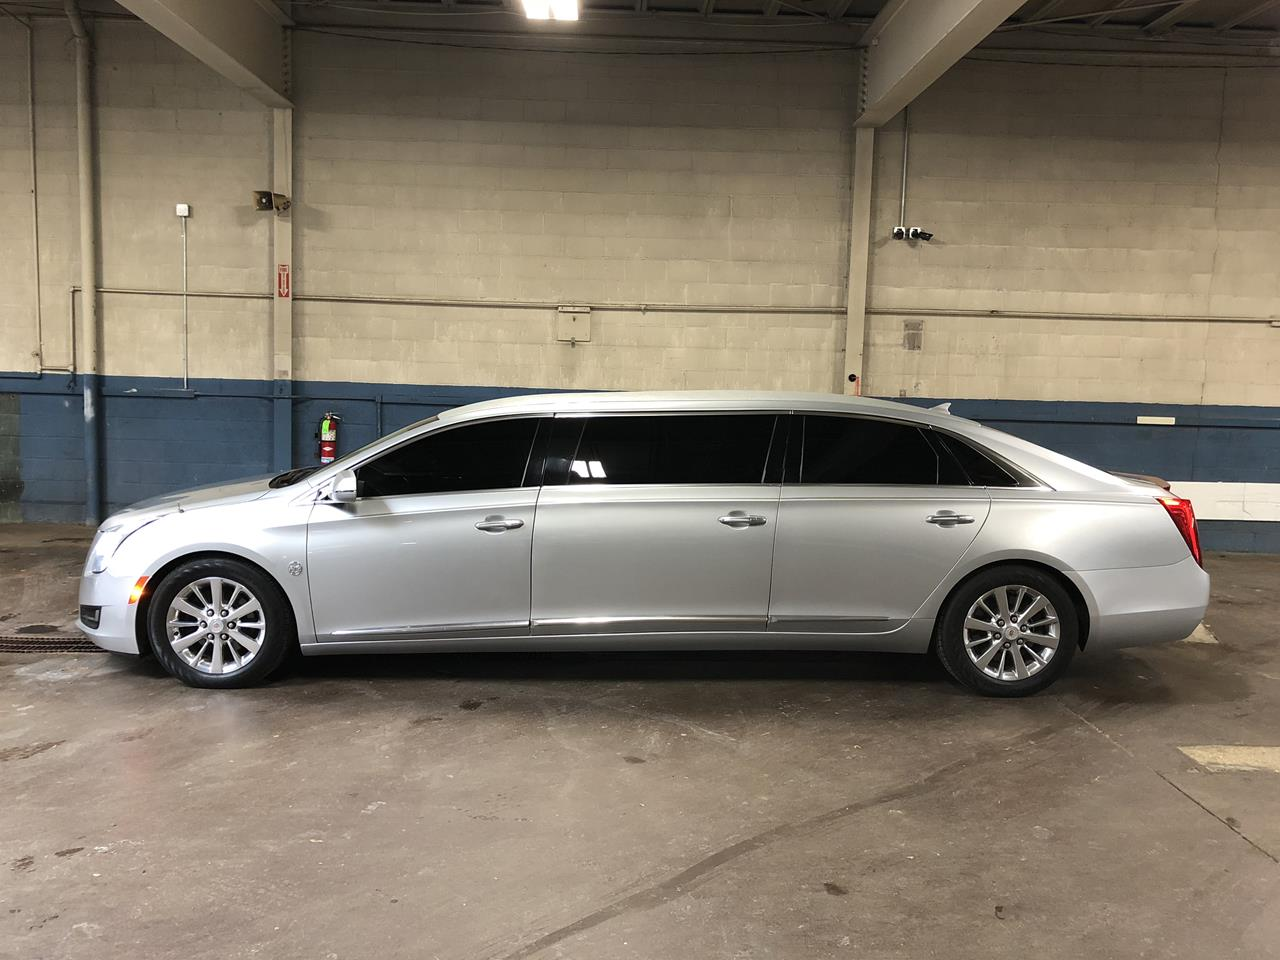 2014 Cadillac Federal 6 Door Limousine